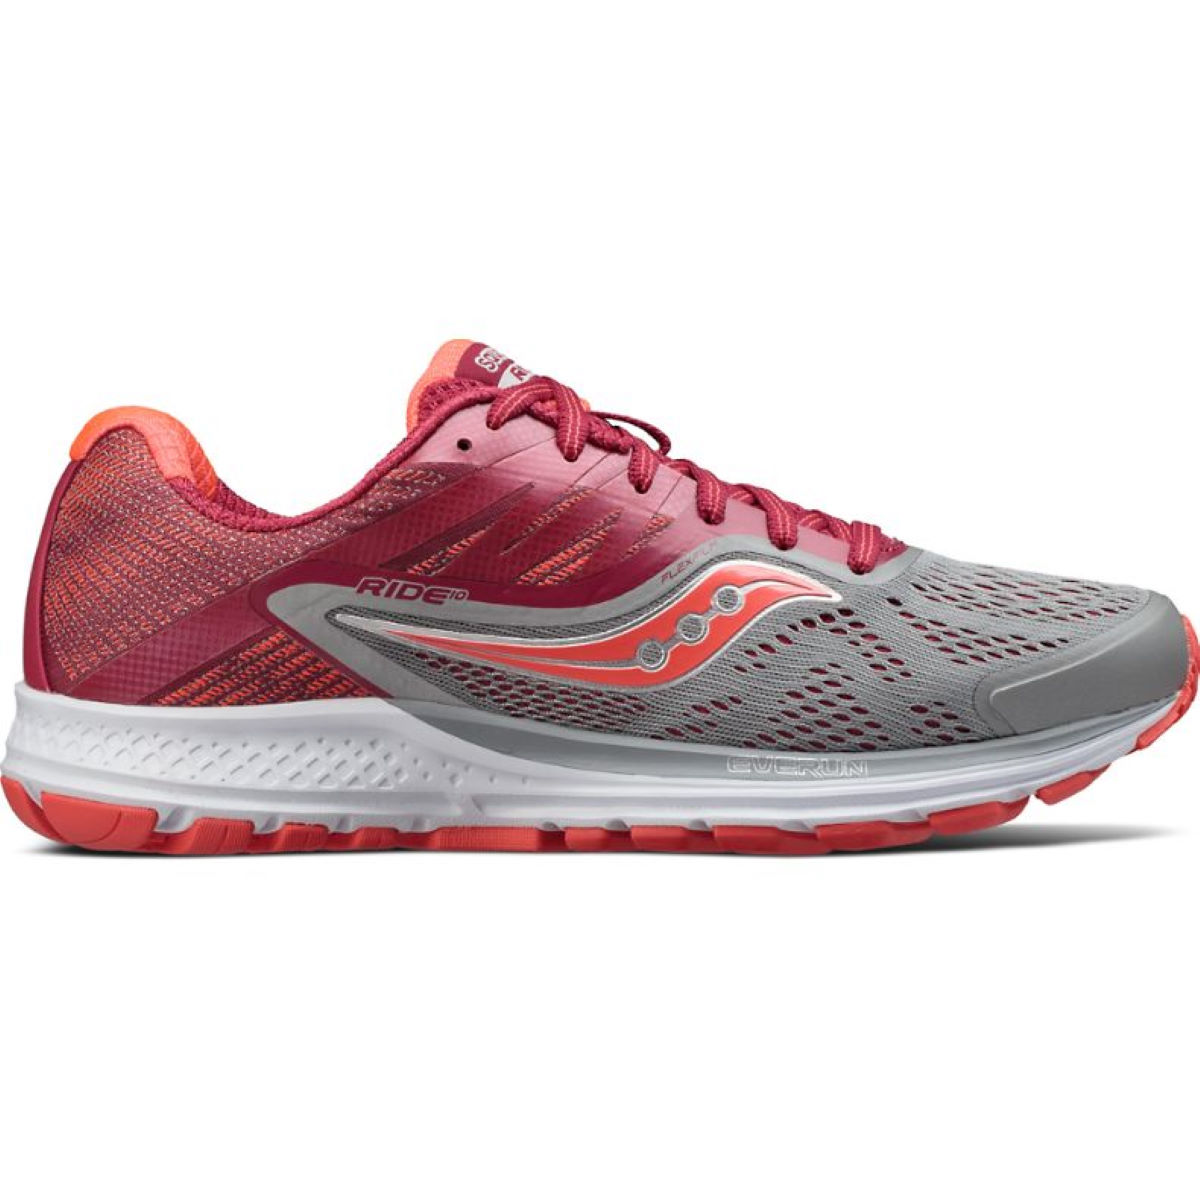 Chaussures Femme Saucony Ride 10 - UK 4 Grey/Pink